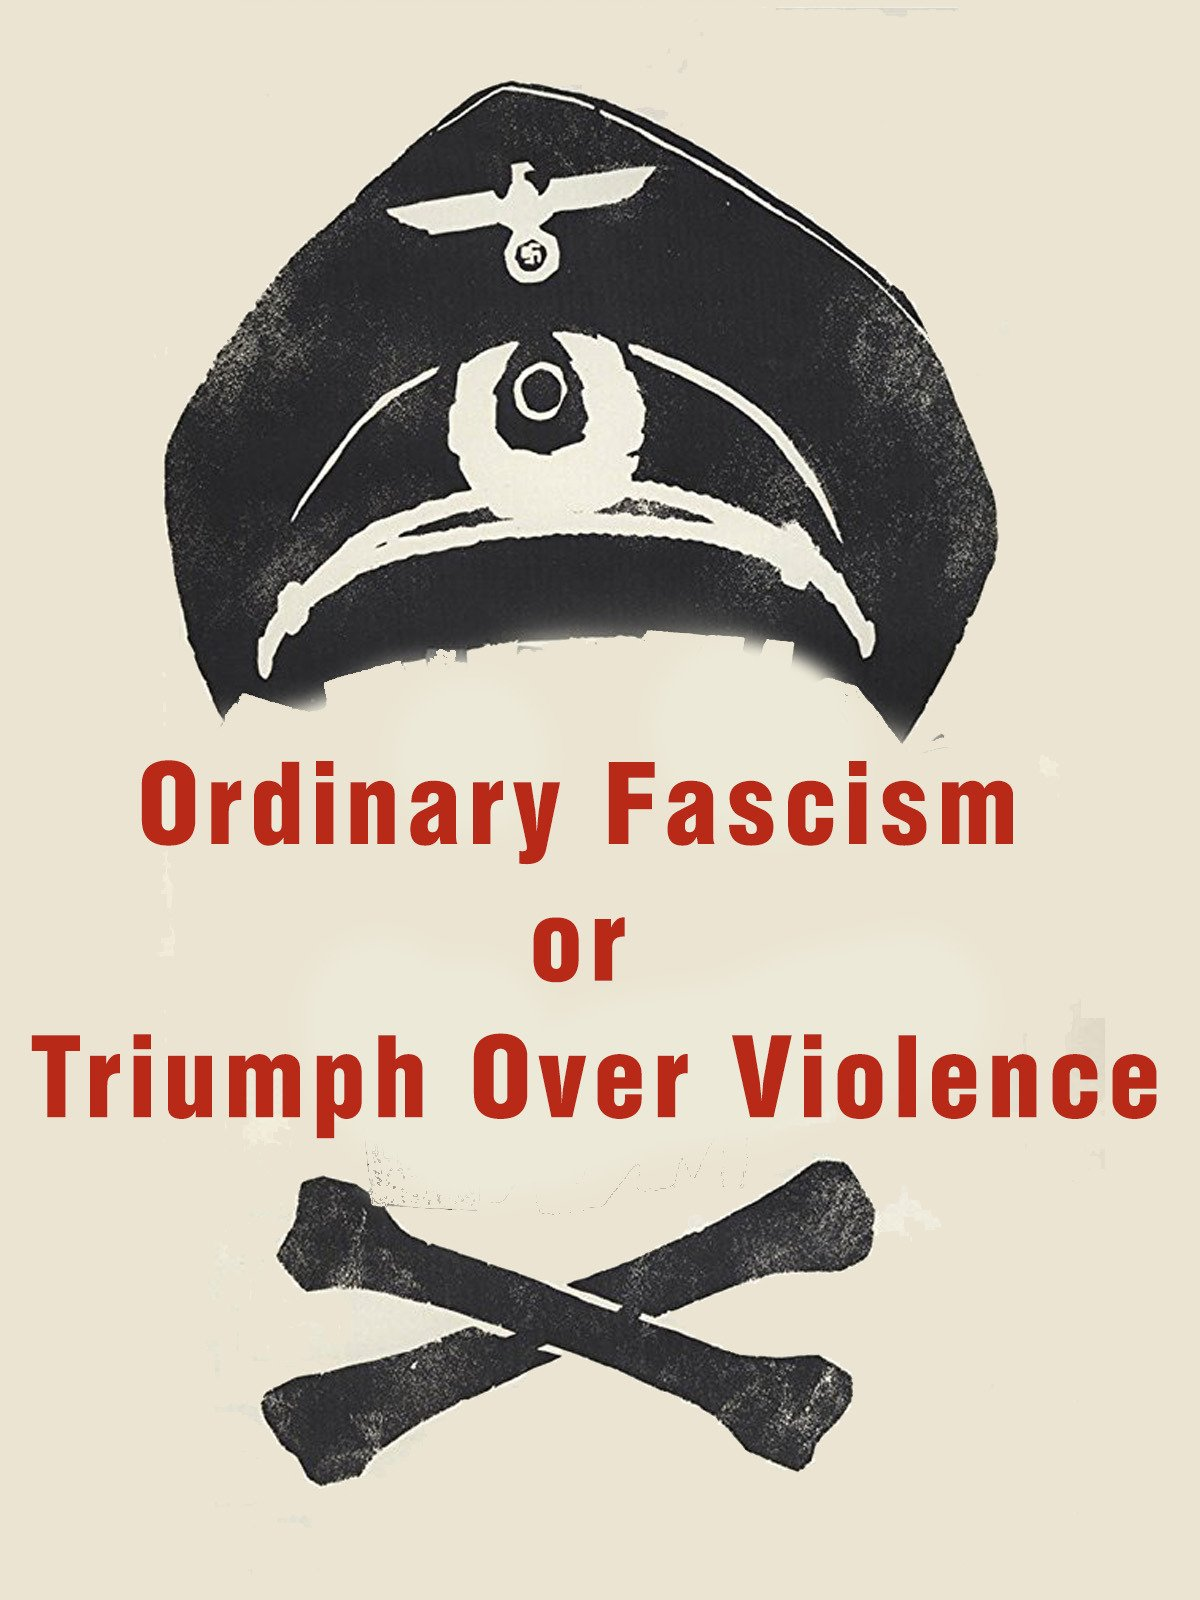 Amazon.com: Ordinary Fascism or Triumph Over Violence: Mikhail Romm ...